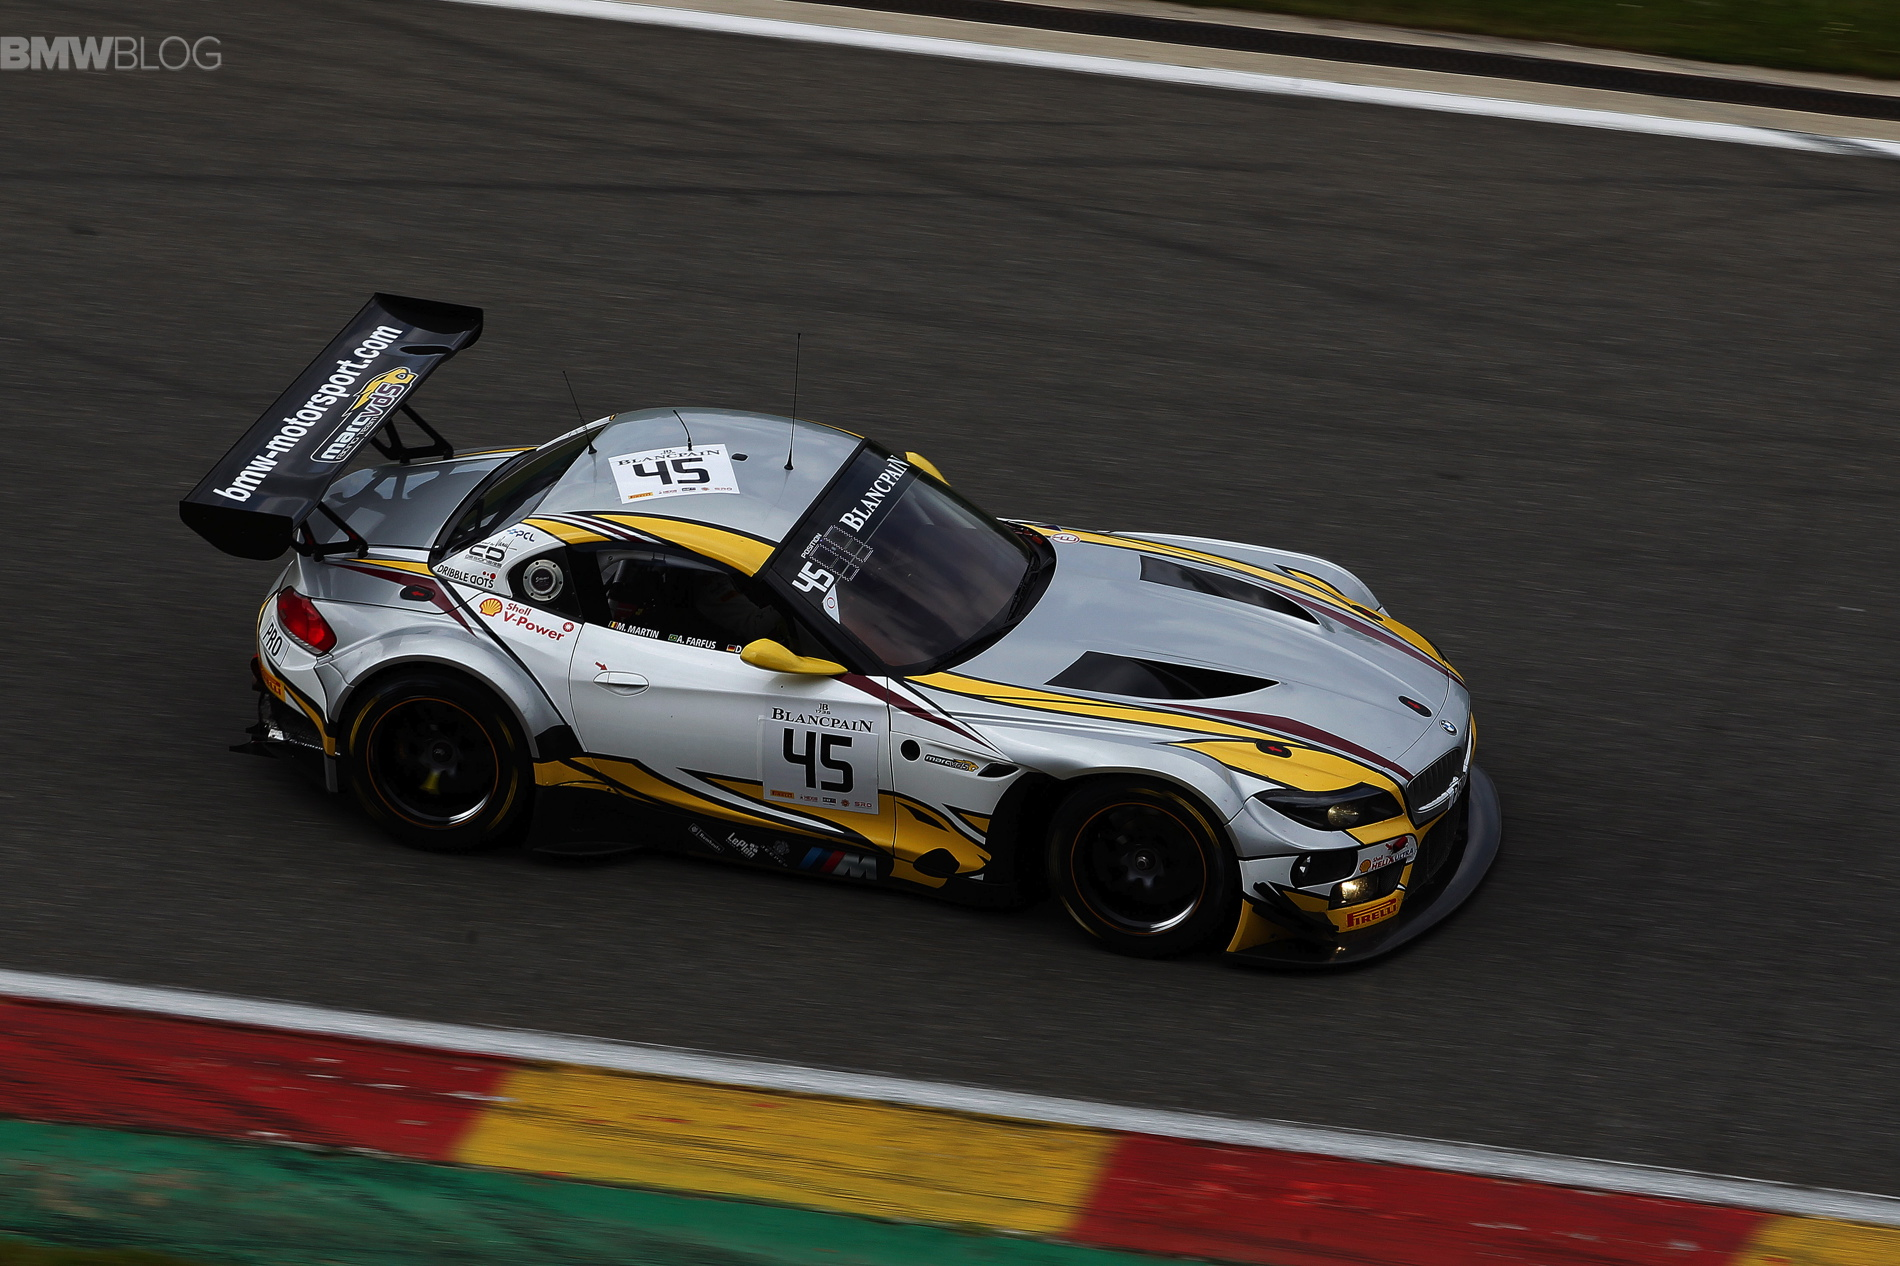 24h spa bmw images 14